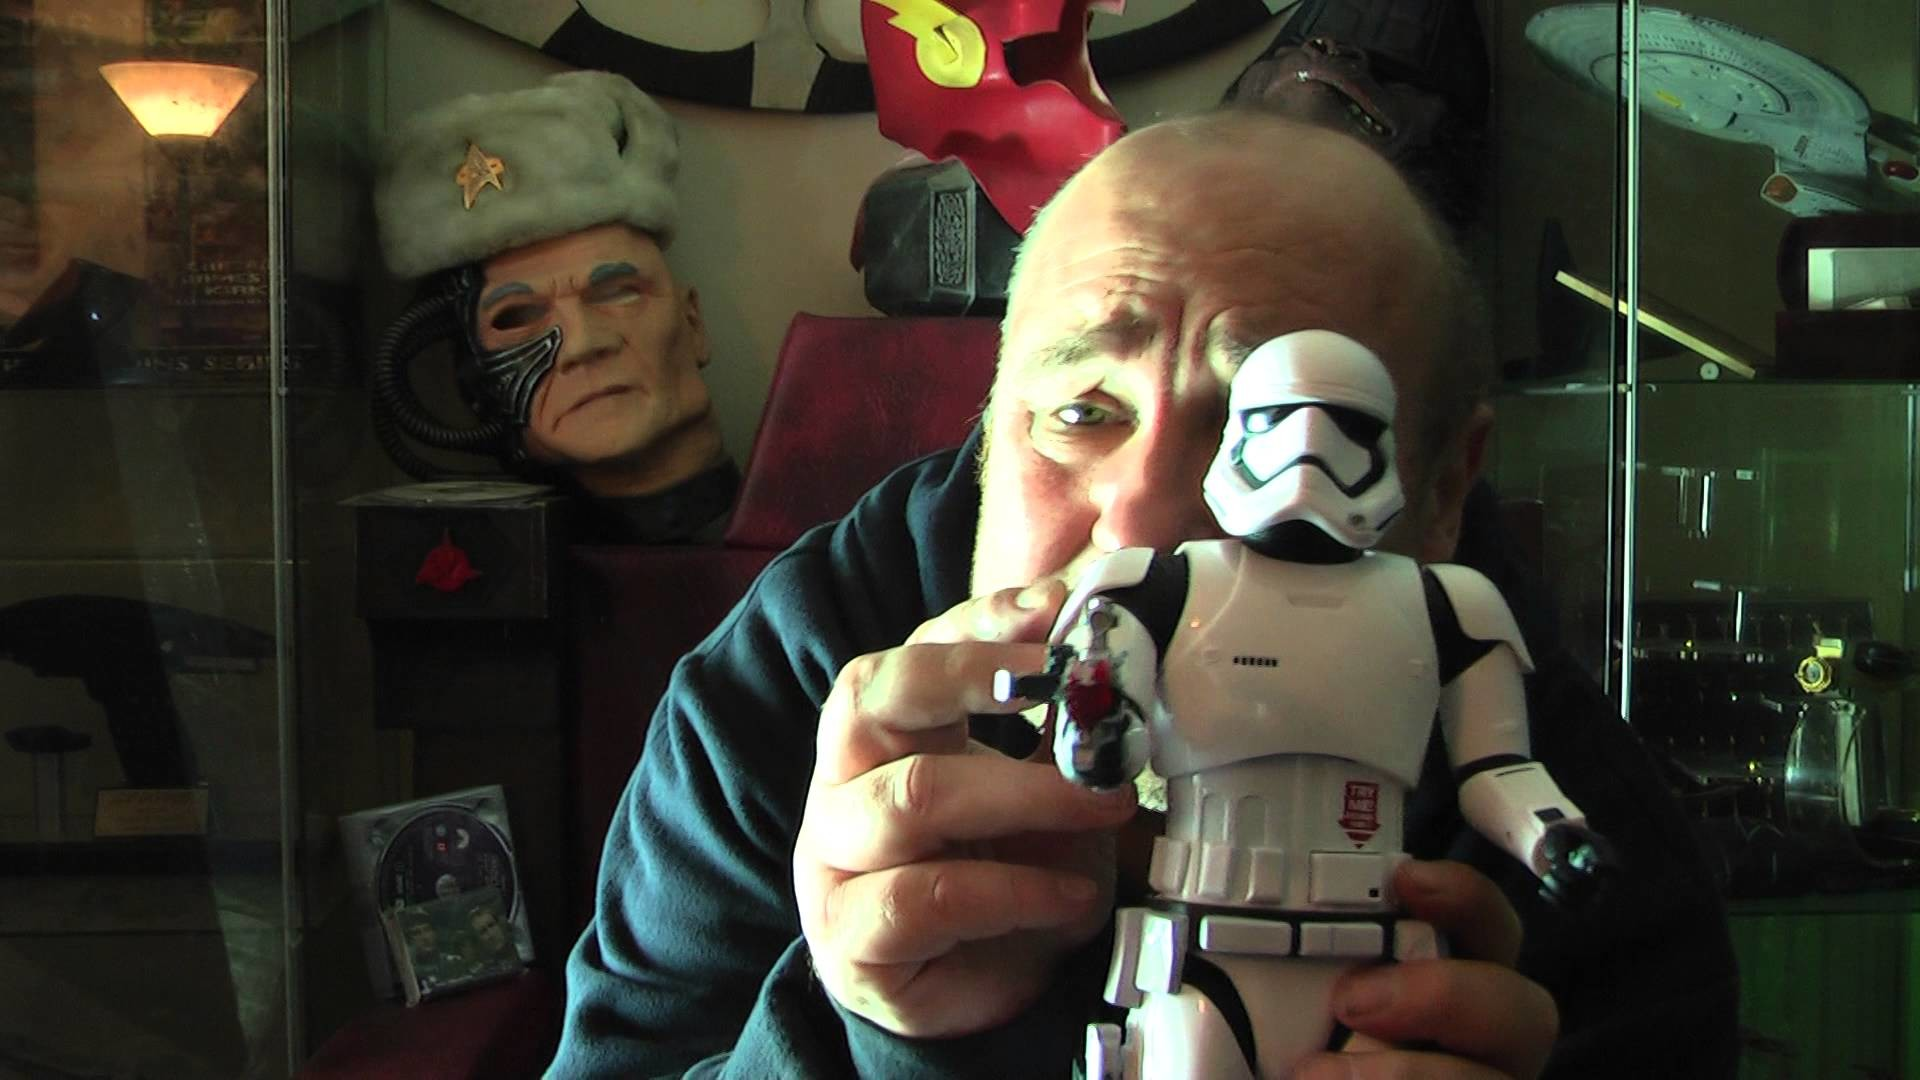 star wars first order 12 inch storm trooper figure review from disney store